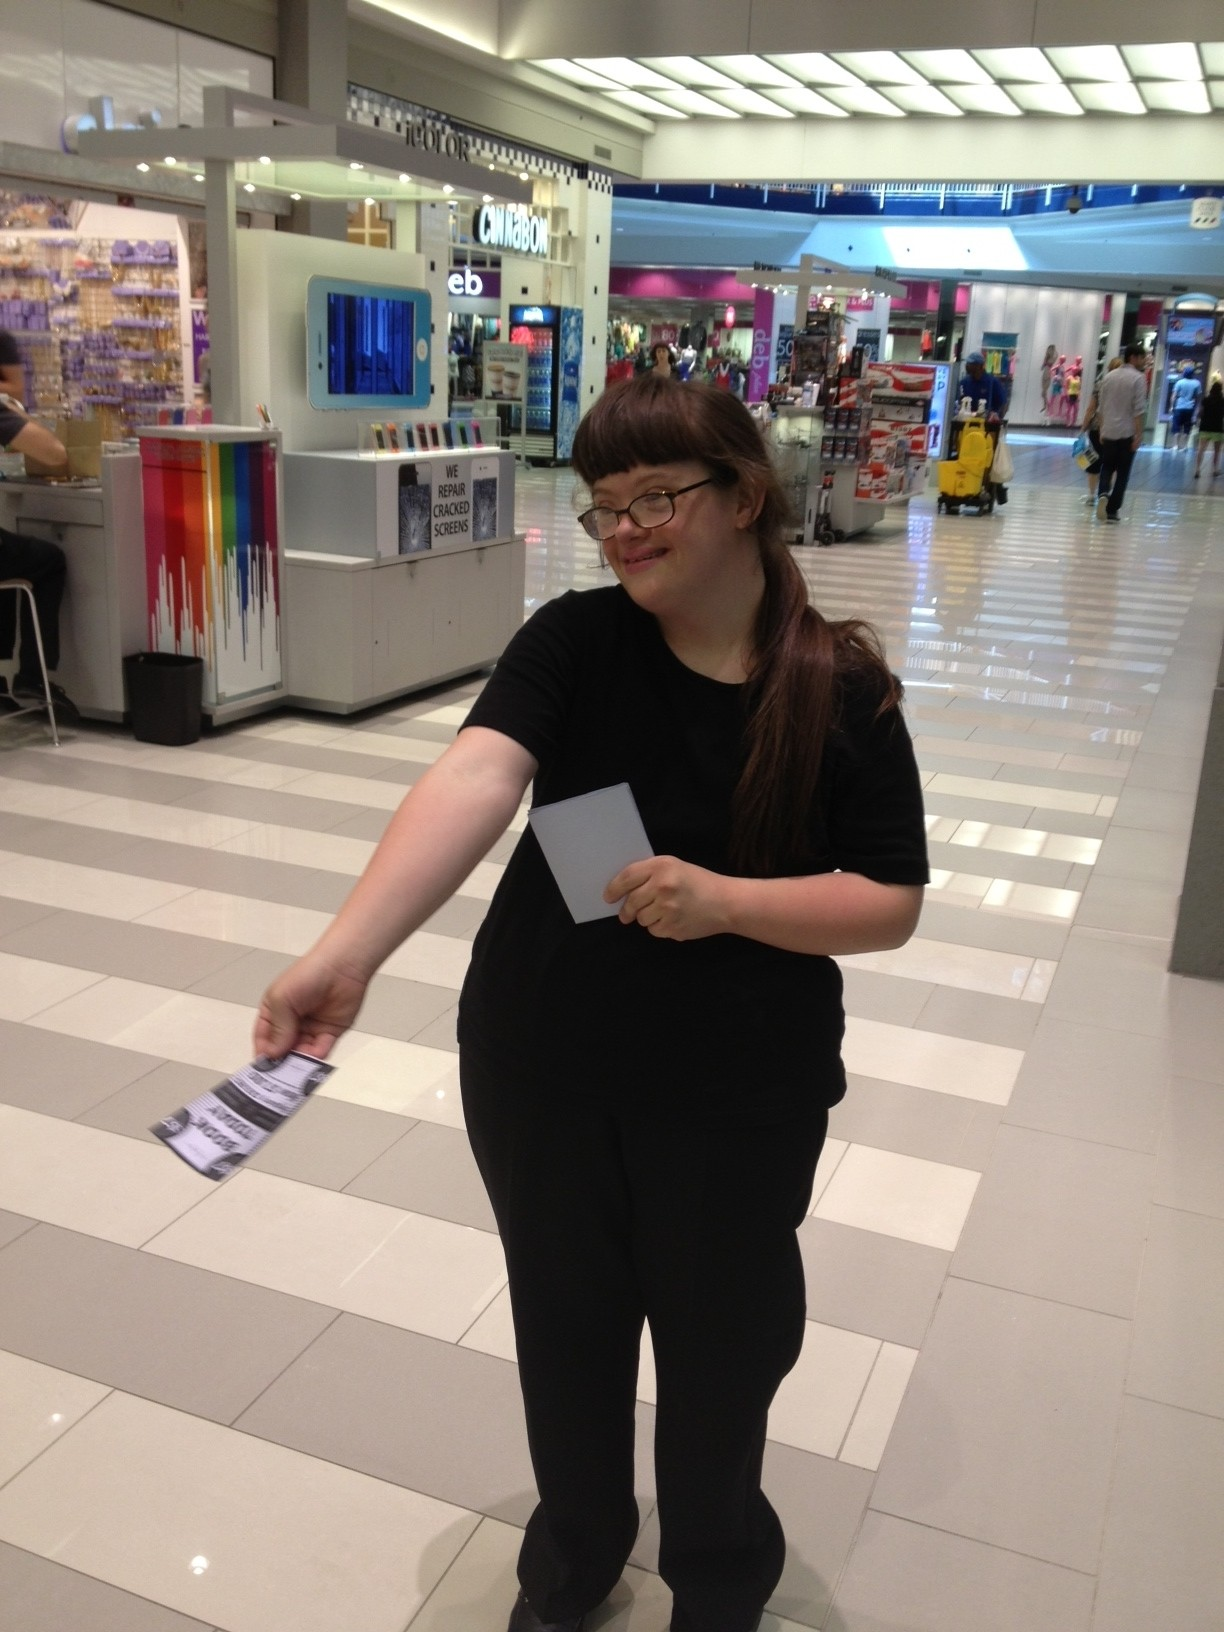 Megan handing out flyers at the Mall of America